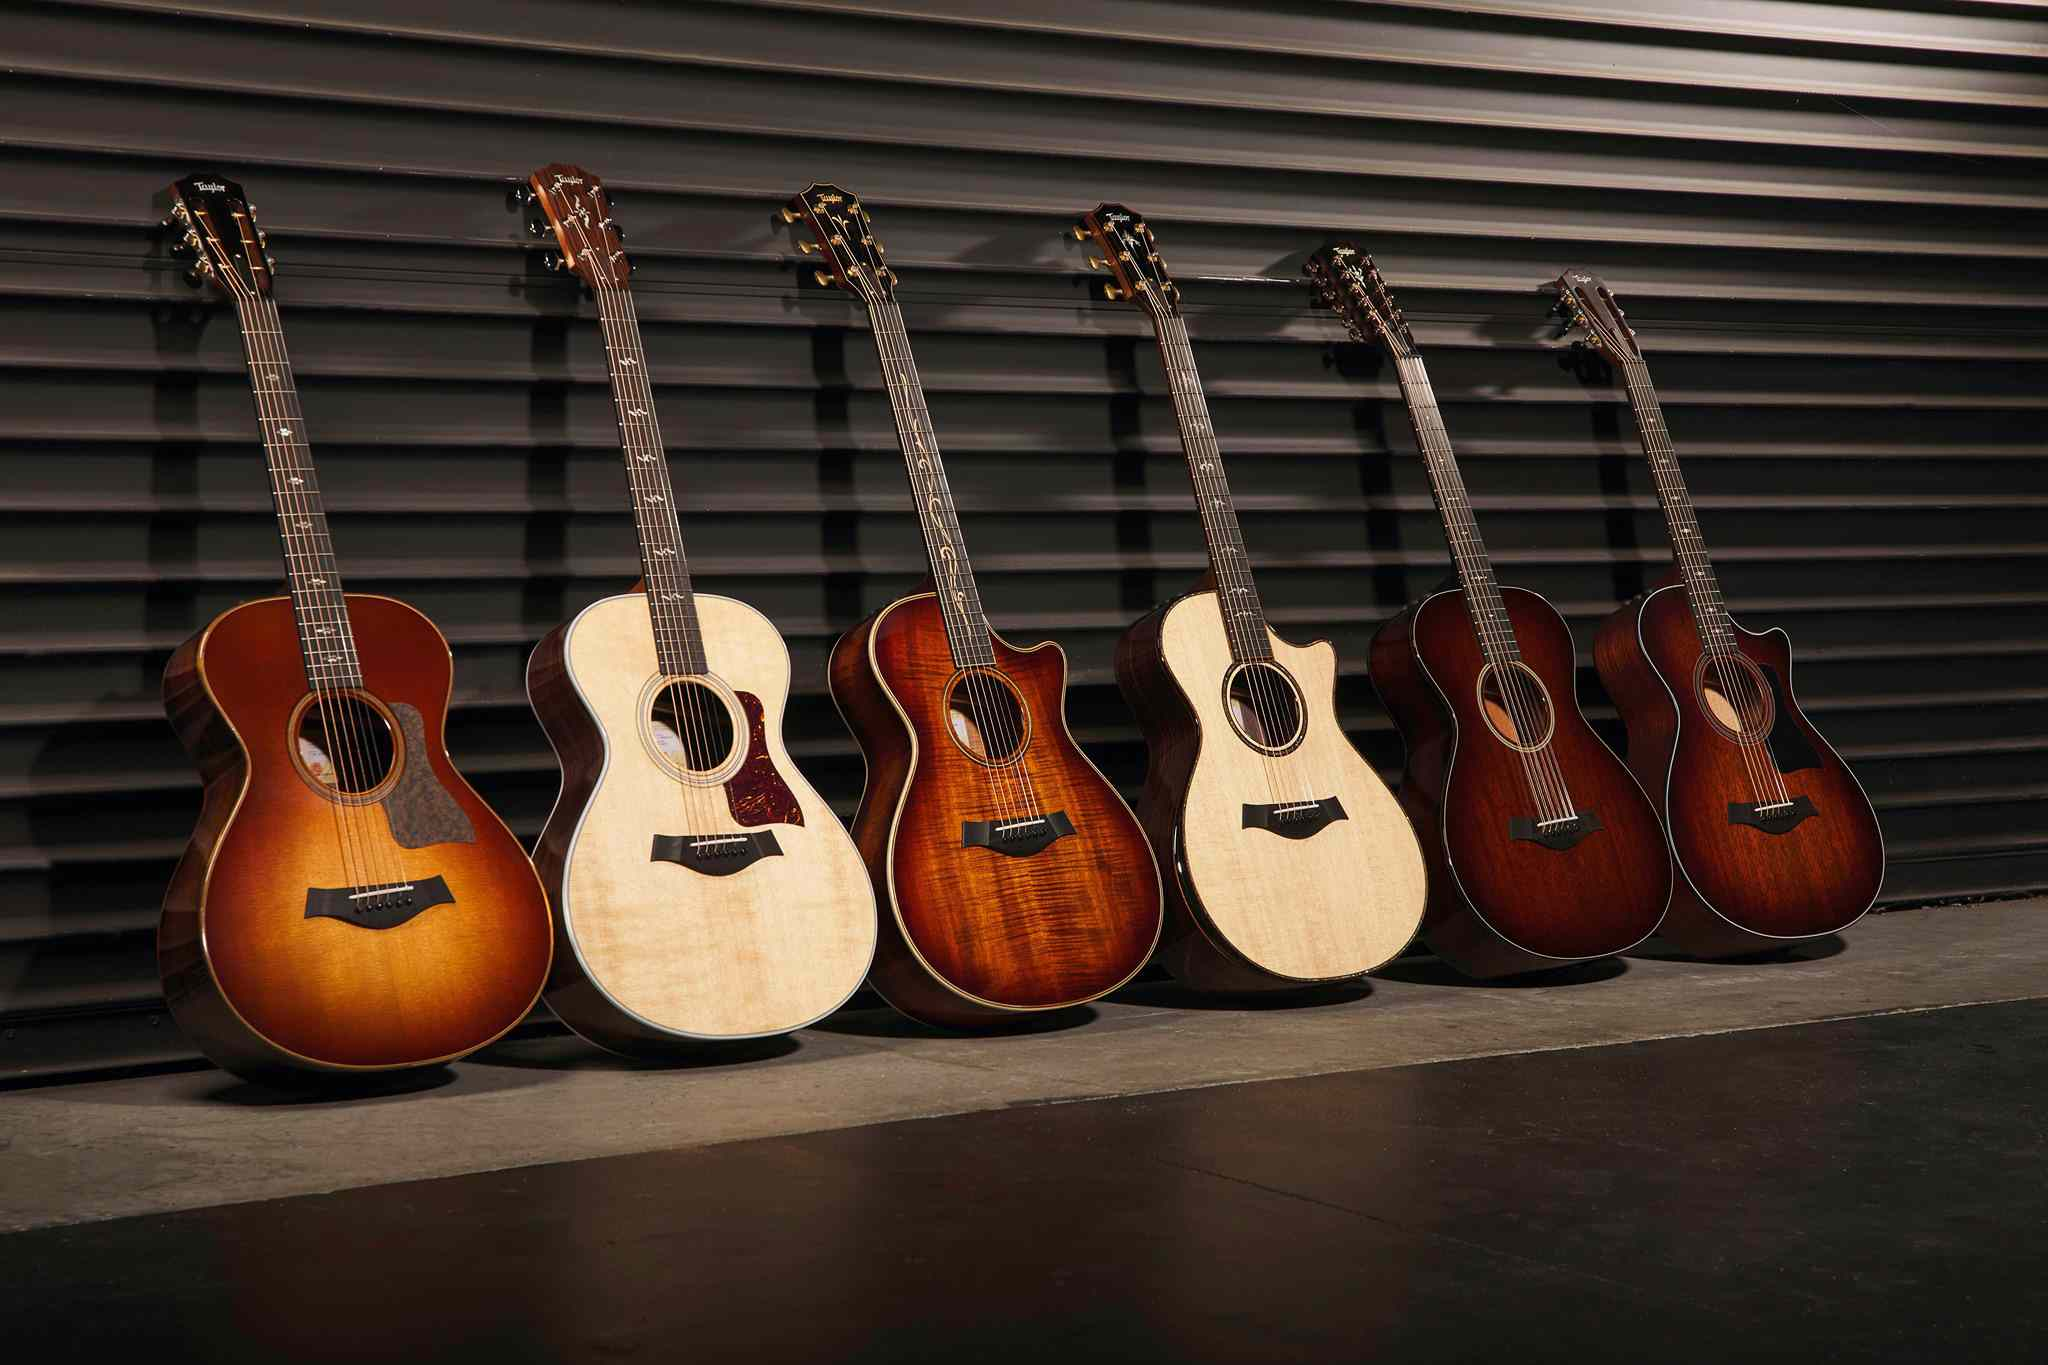 Row of six acoustic guitars leaning against a wall